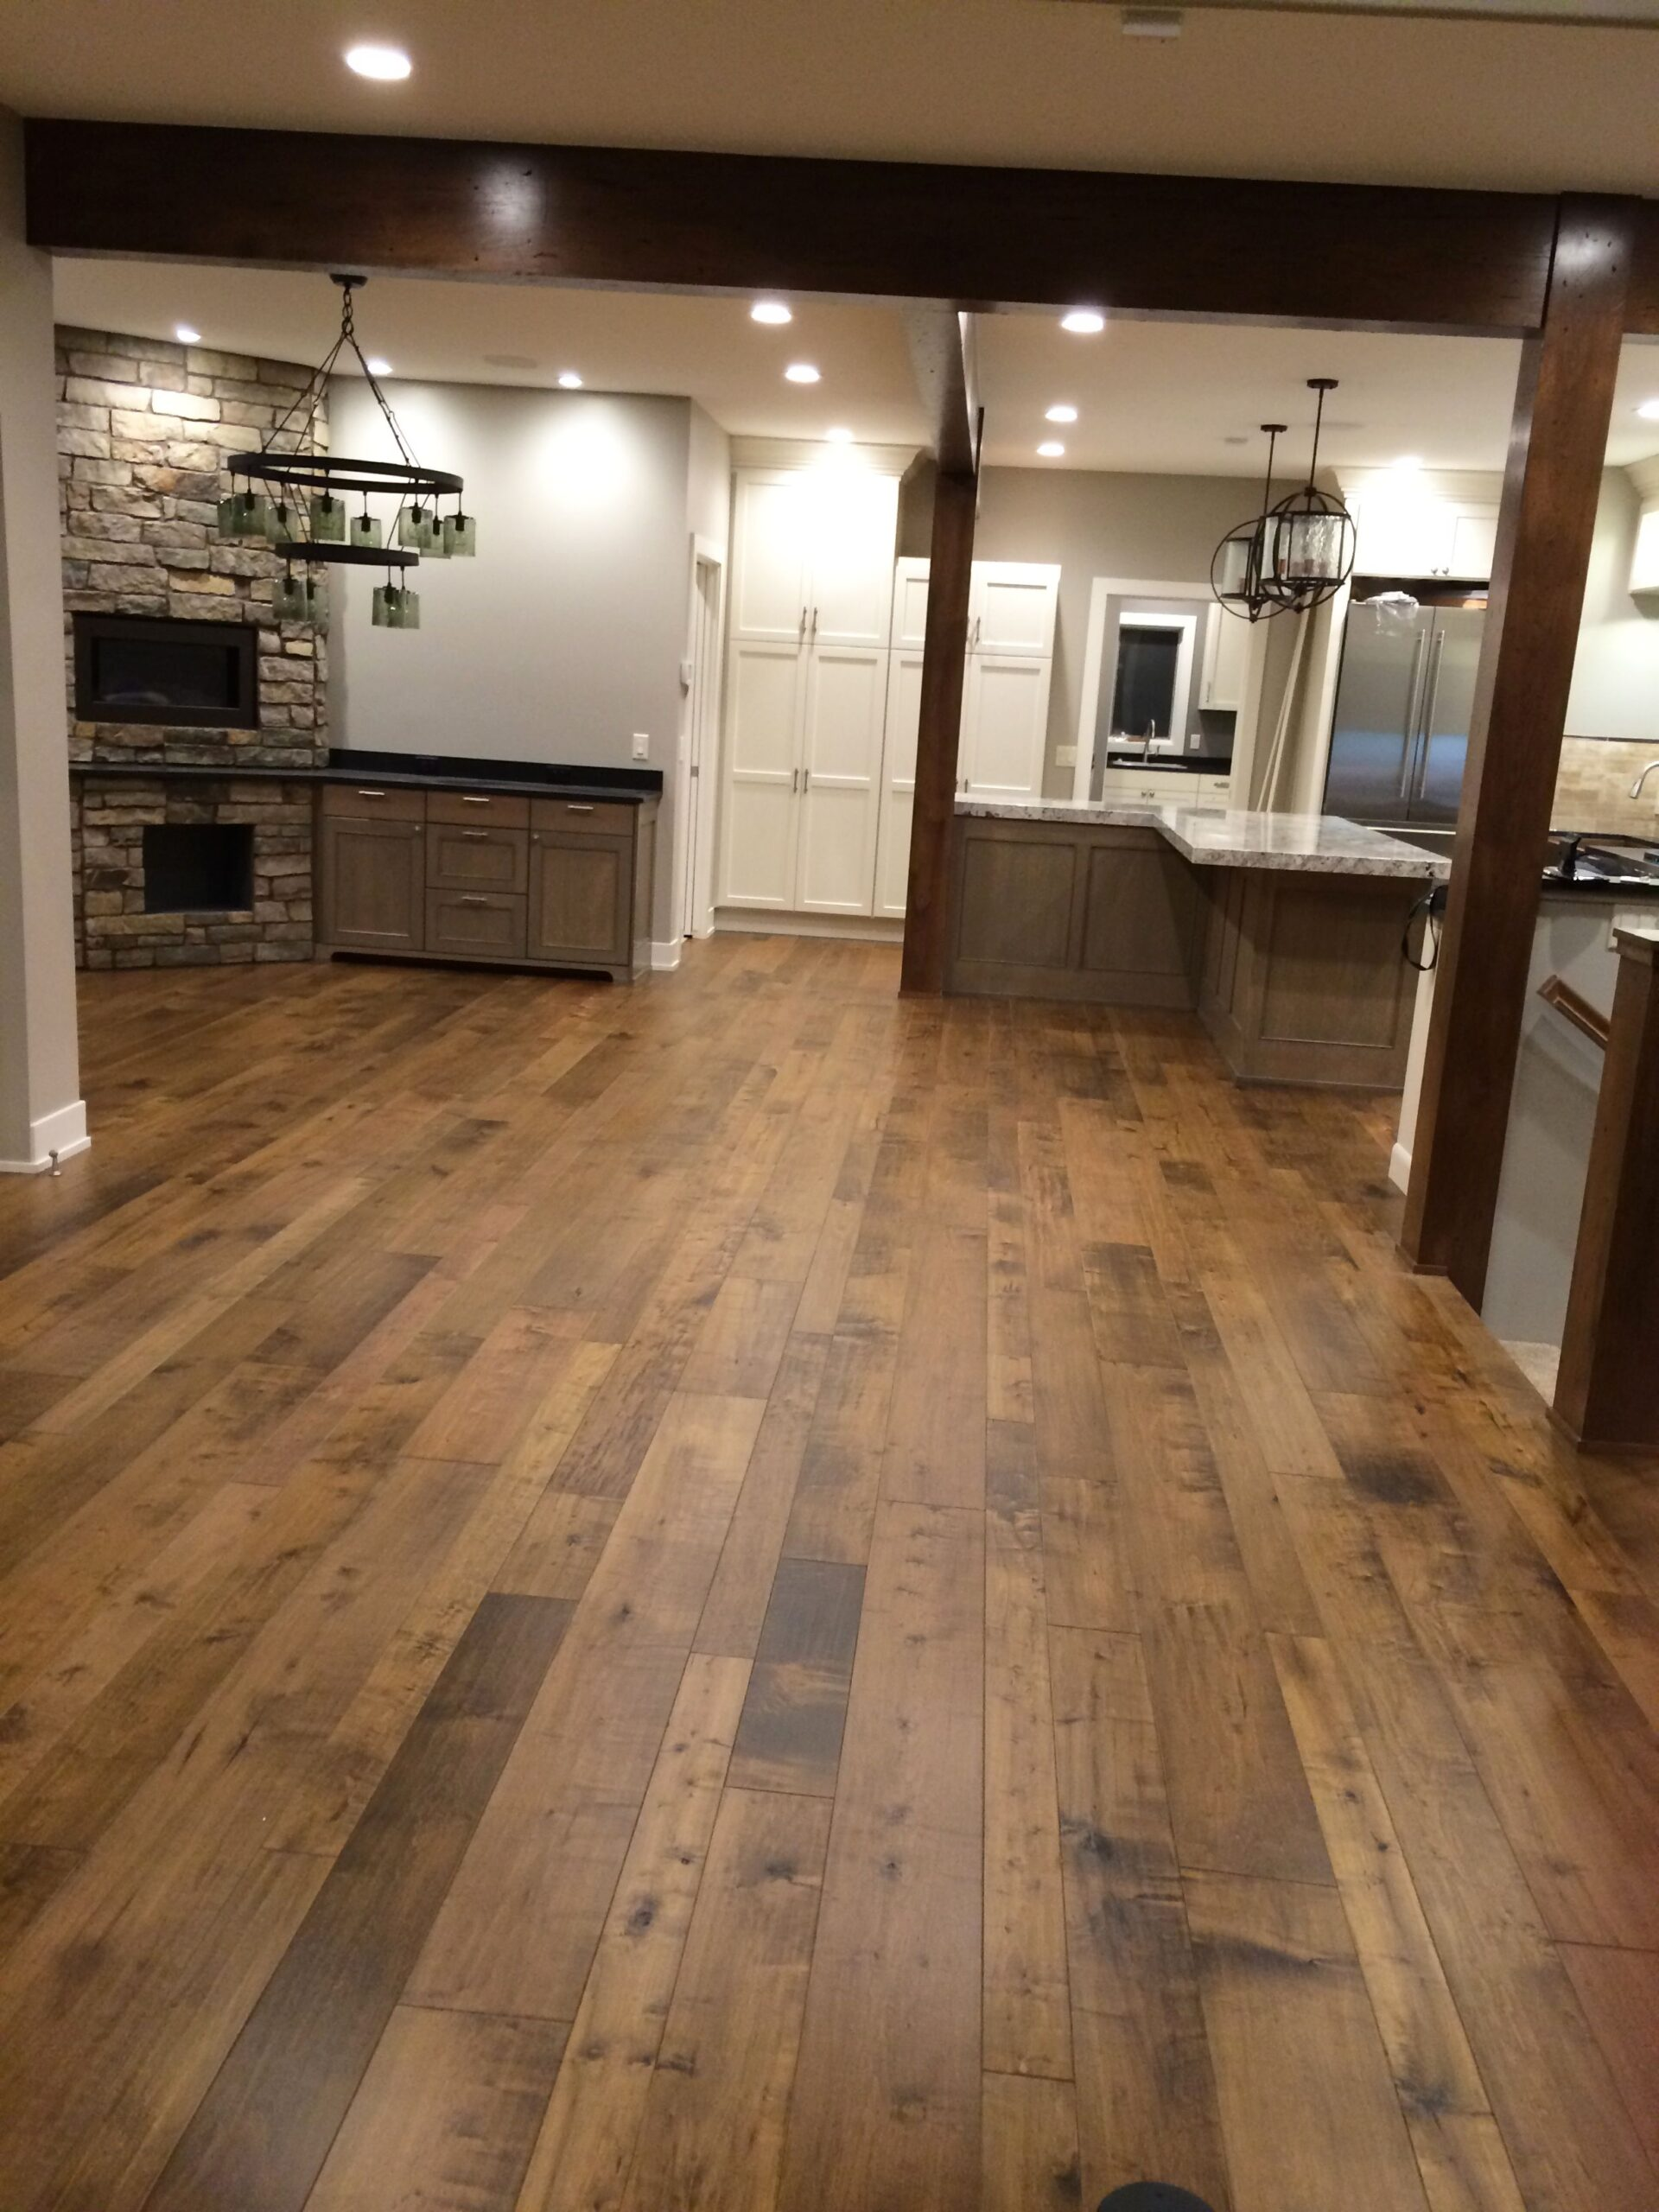 The Advantages of Wood Flooring